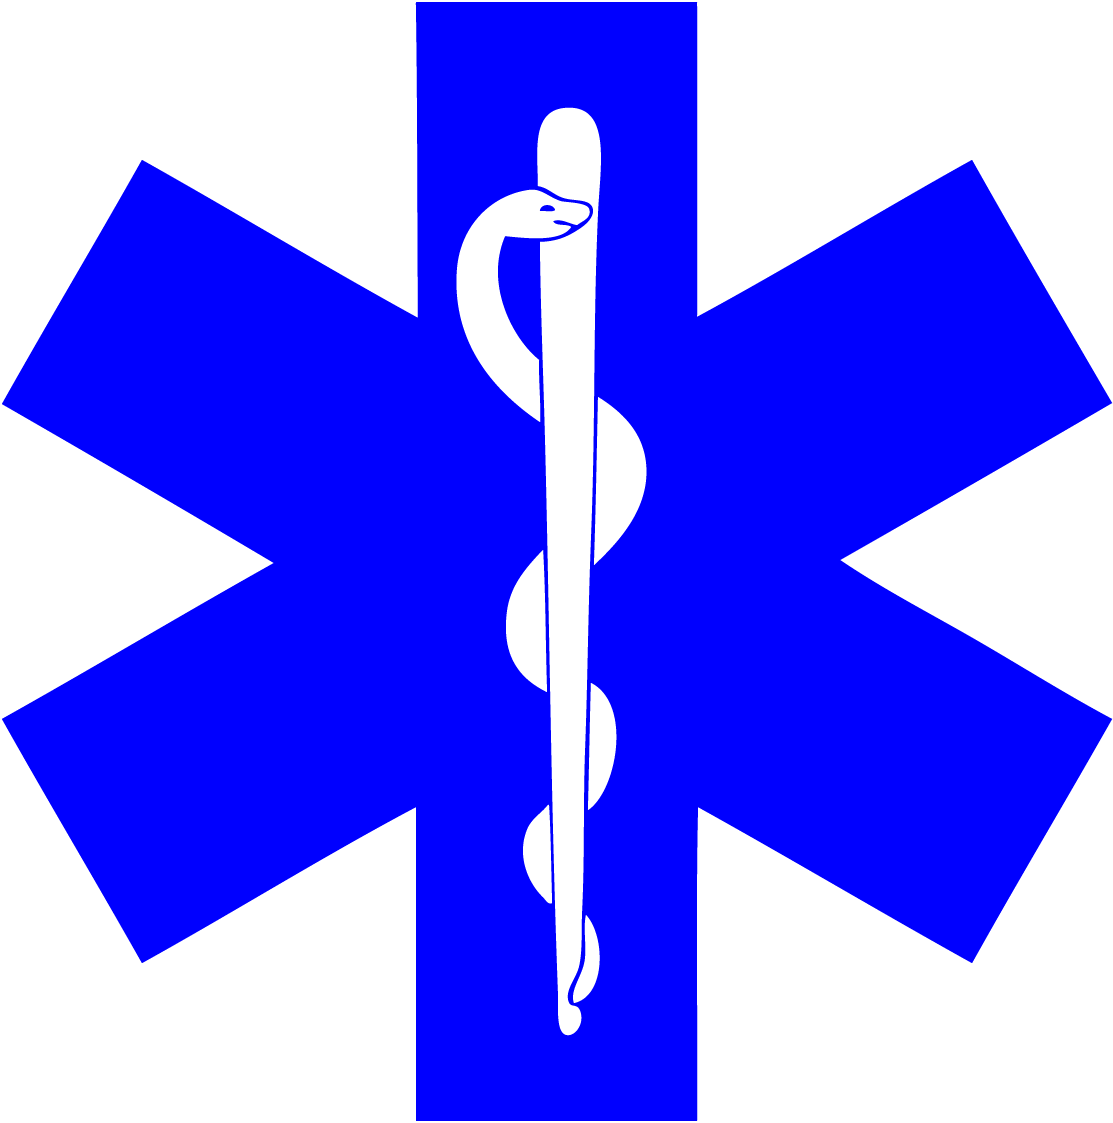 34 Emt Logo Free Cliparts That You Can Download To You Computer And